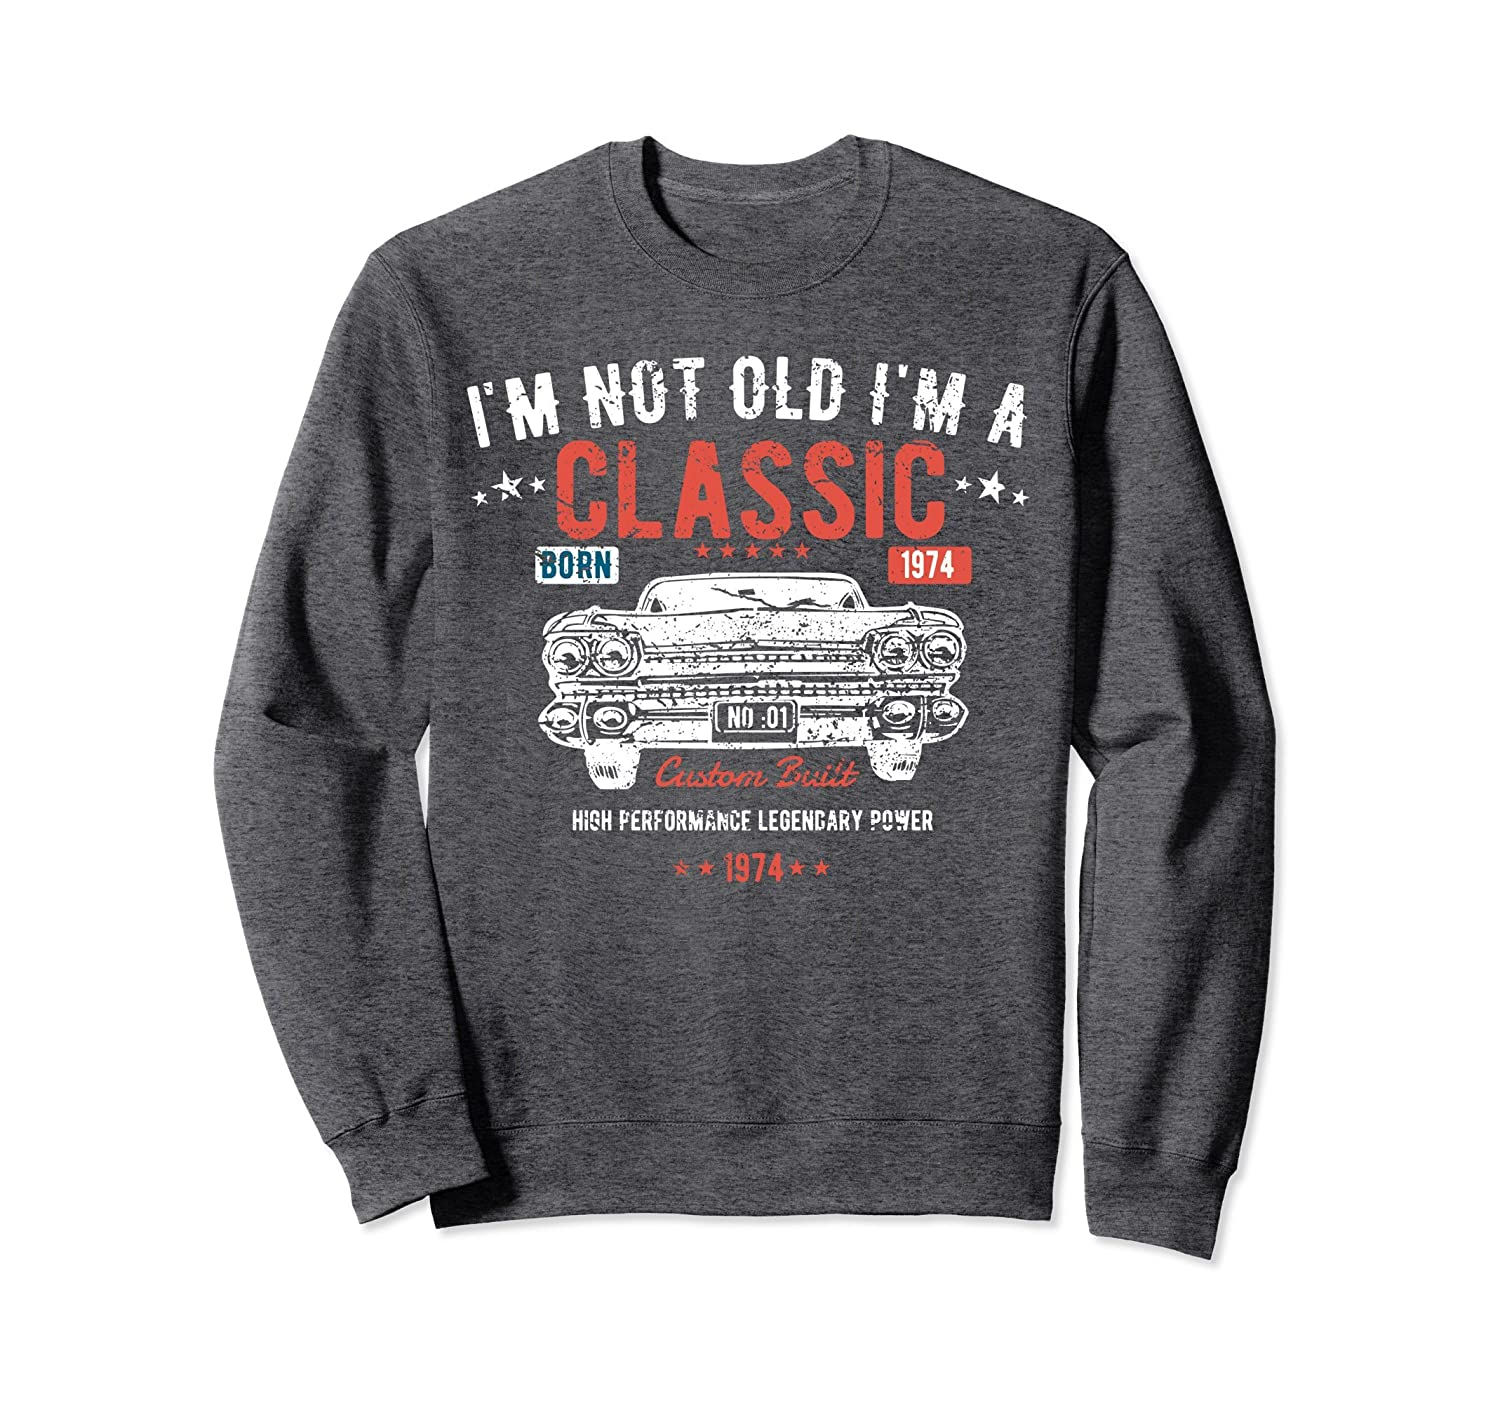 44th Birthday Shirt   I'm Not Old I'm a Classic Born 1974-Protee